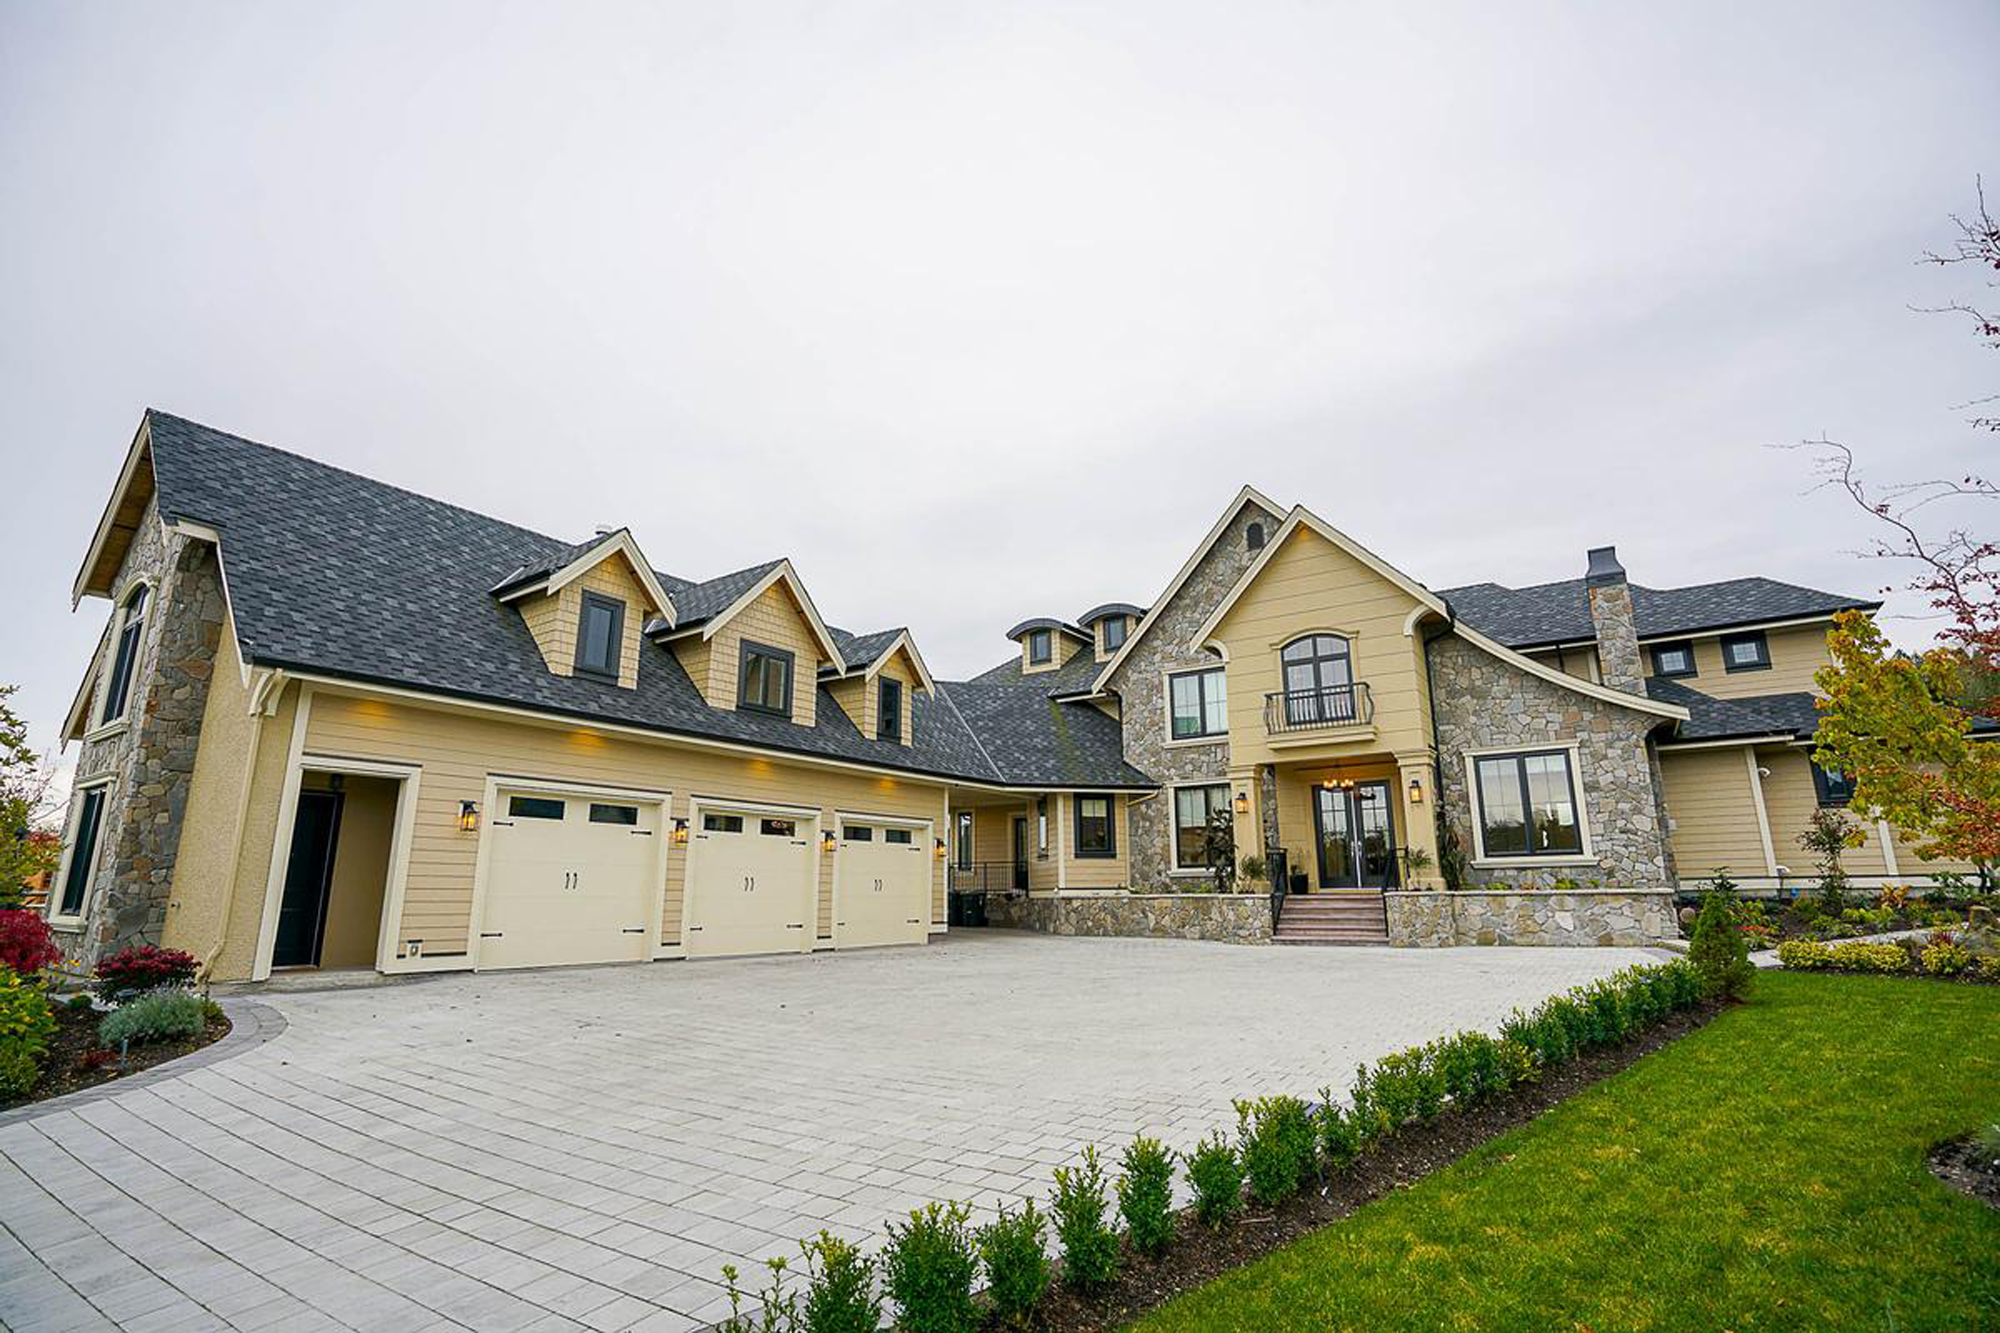 monmouth county Nj mansion stucco and stone exterior yellow stucco Gambrick custom home builder